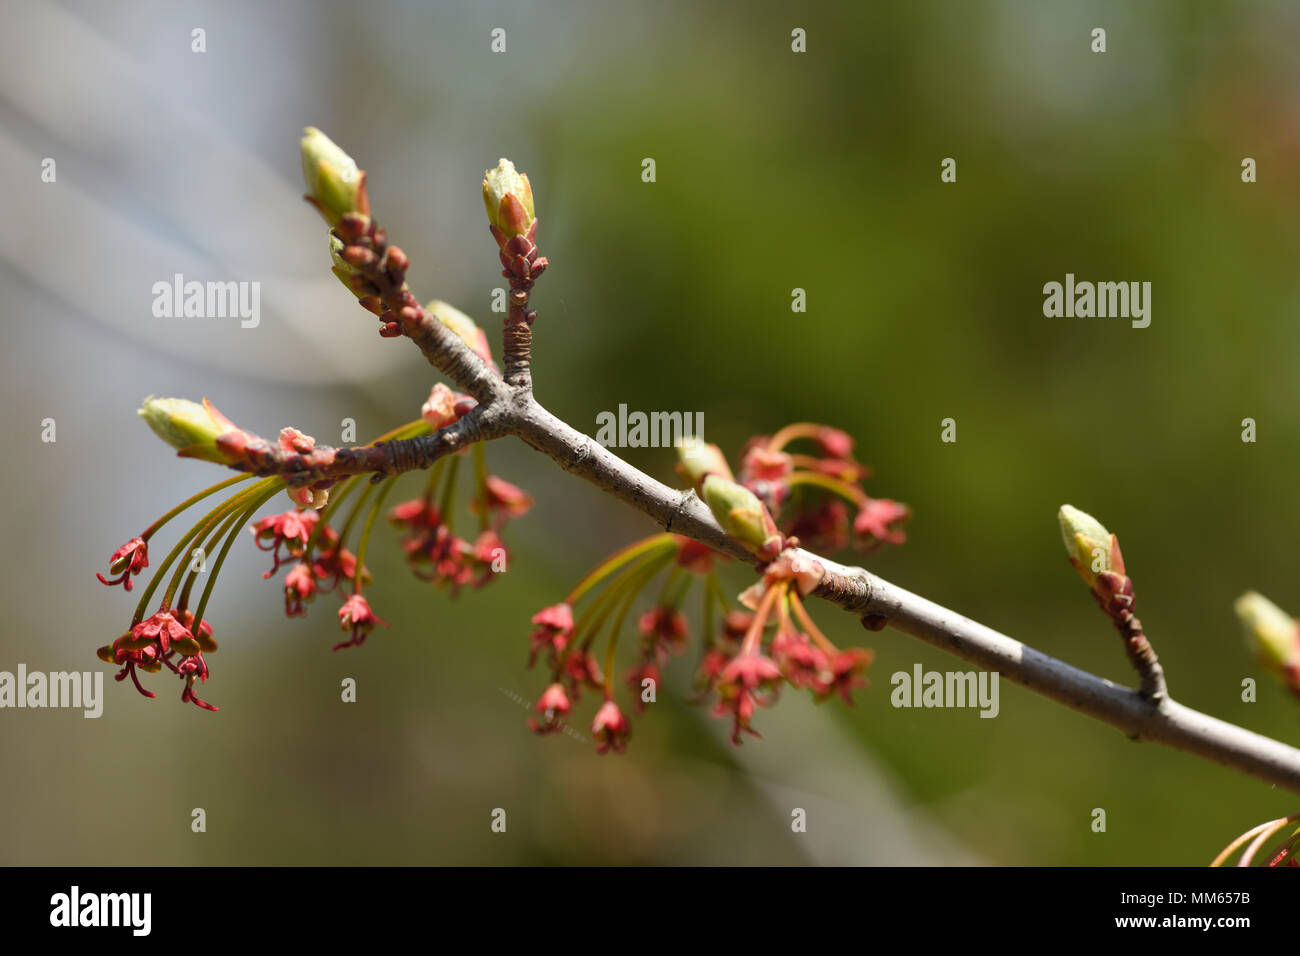 Close up of Acer Rubrum Redpointe Red Maple tree flowers with early leaf buds in Spring - Stock Image